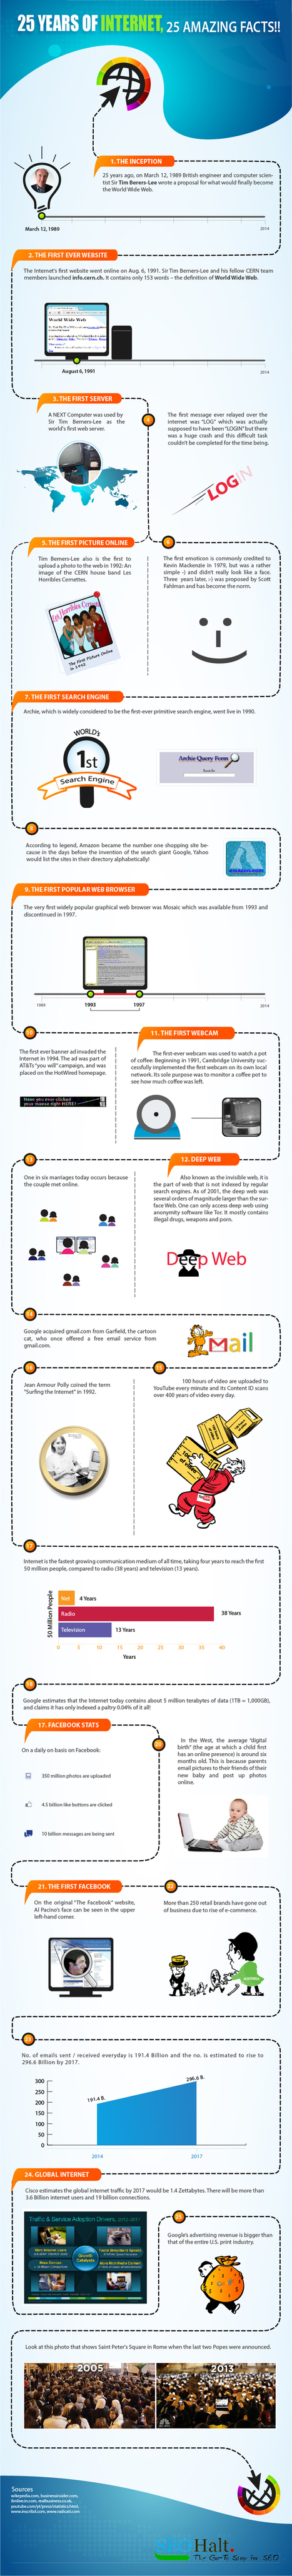 25 Amazing Facts about the Internet [Infographic] | Social Media 202 | Scoop.it